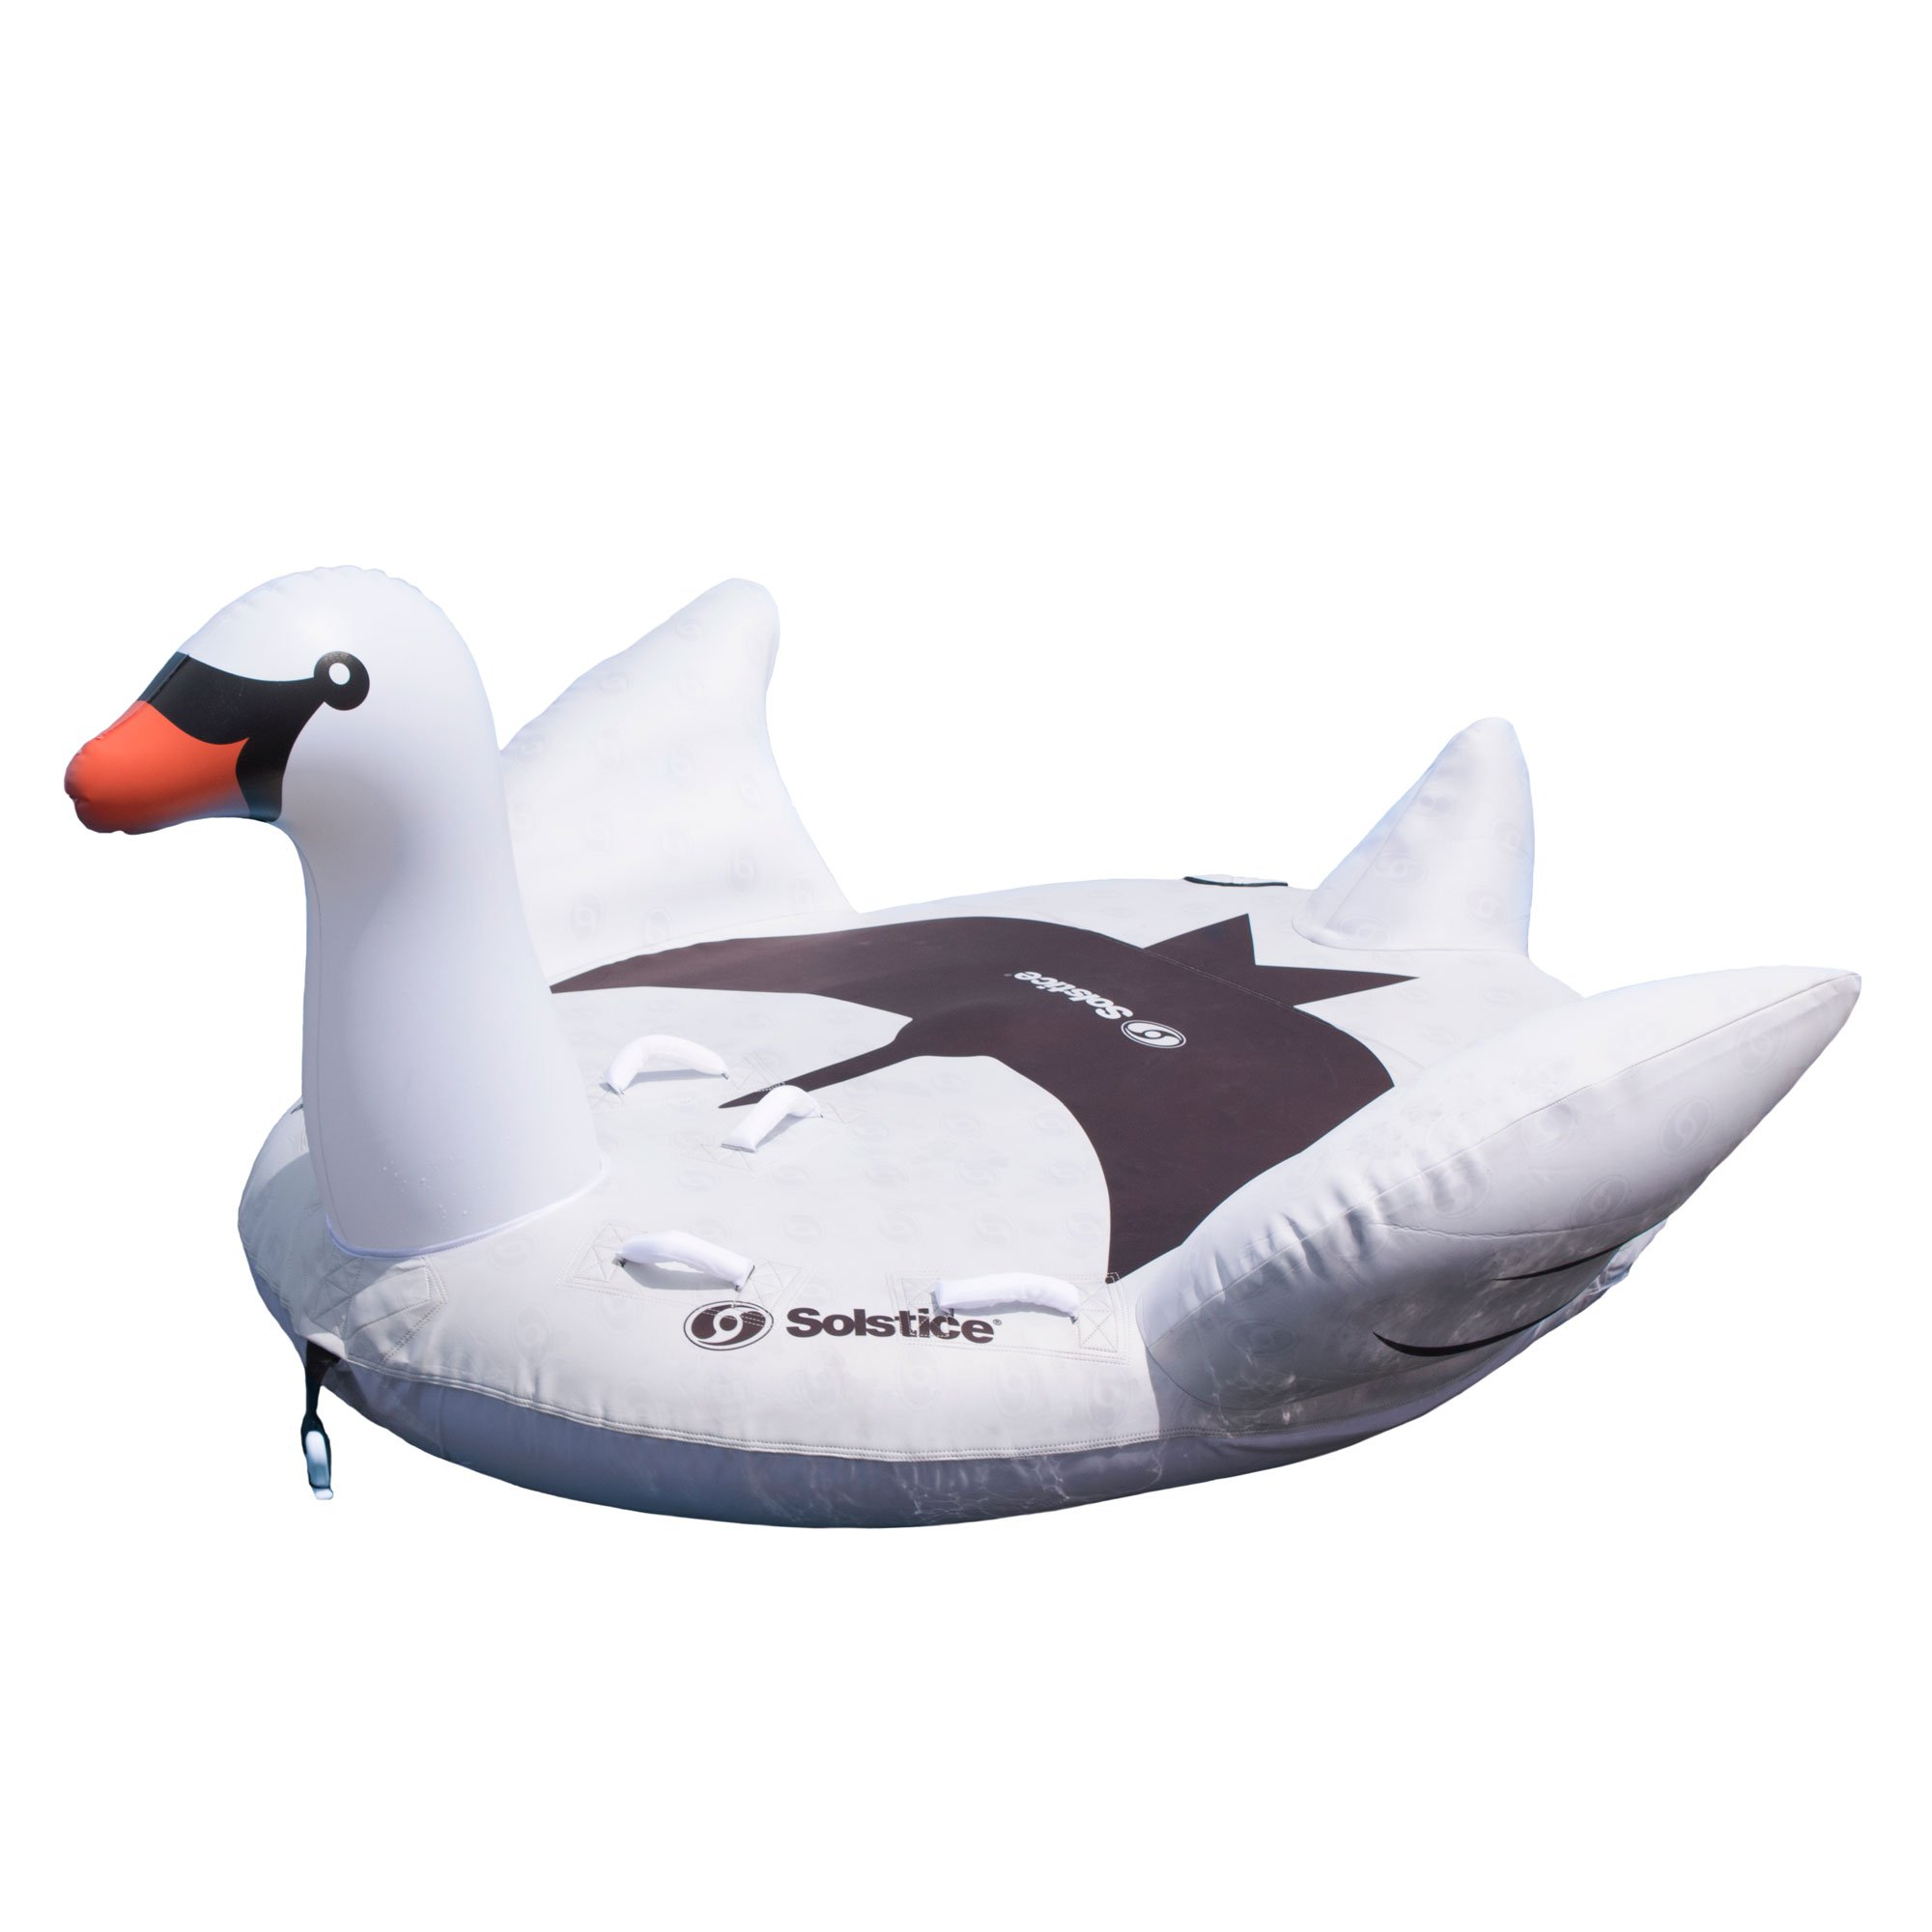 Swimline Solstice Water Sport Inflatable Swan 1 to 2 Rider Boat Towable Tube by Swimline